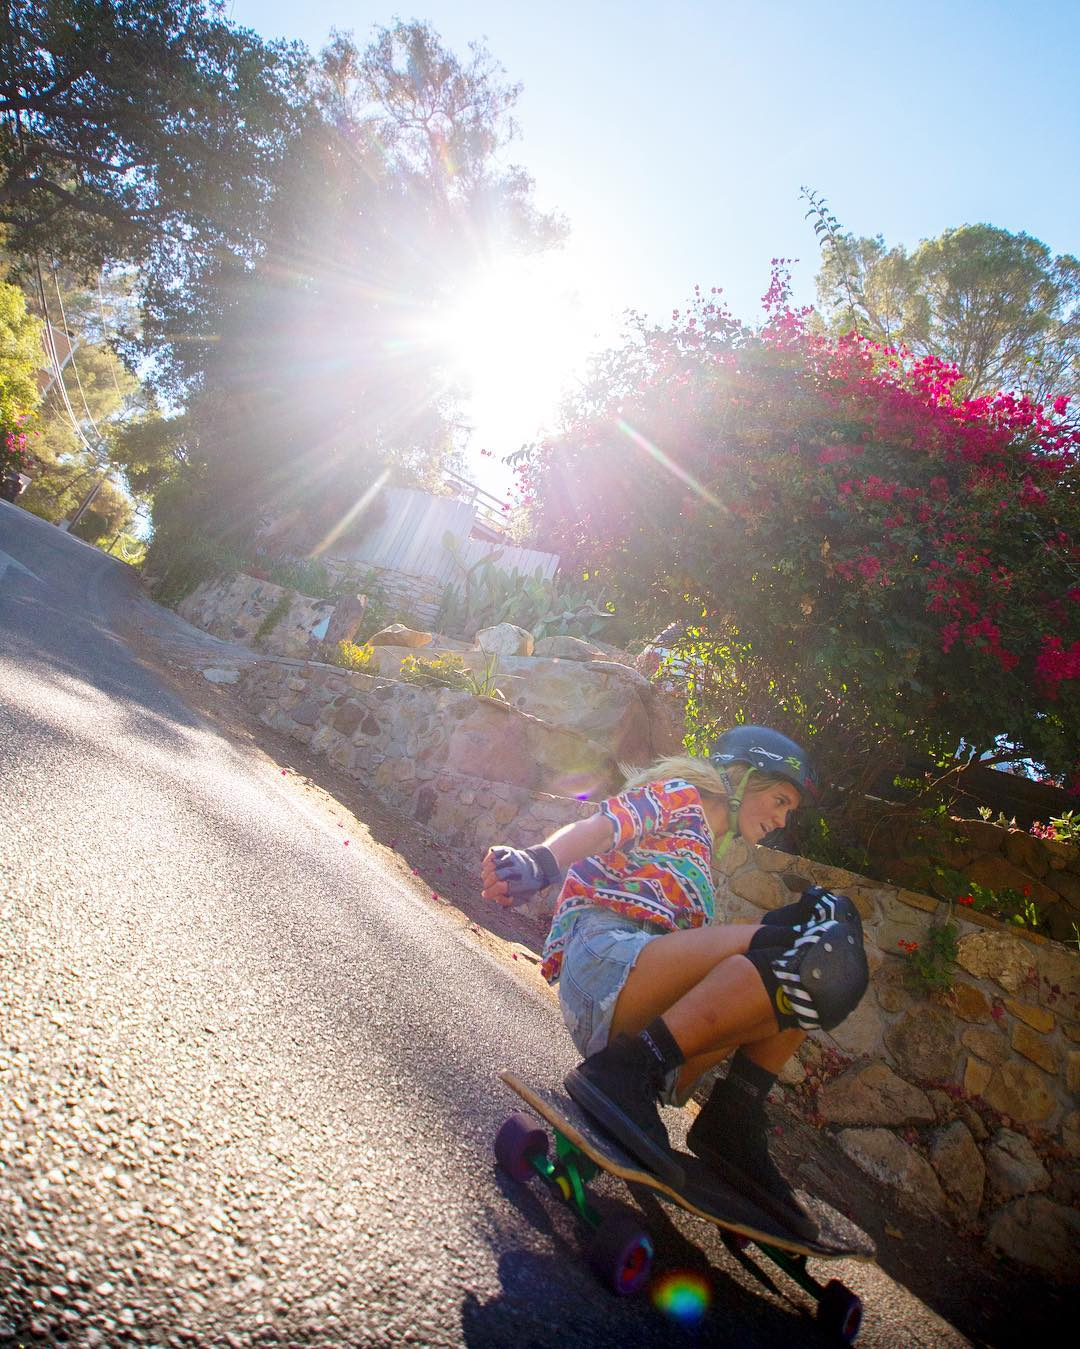 #OrangatangAmbassador @pandaskate sliding through light spots in colorful Topanga roads.